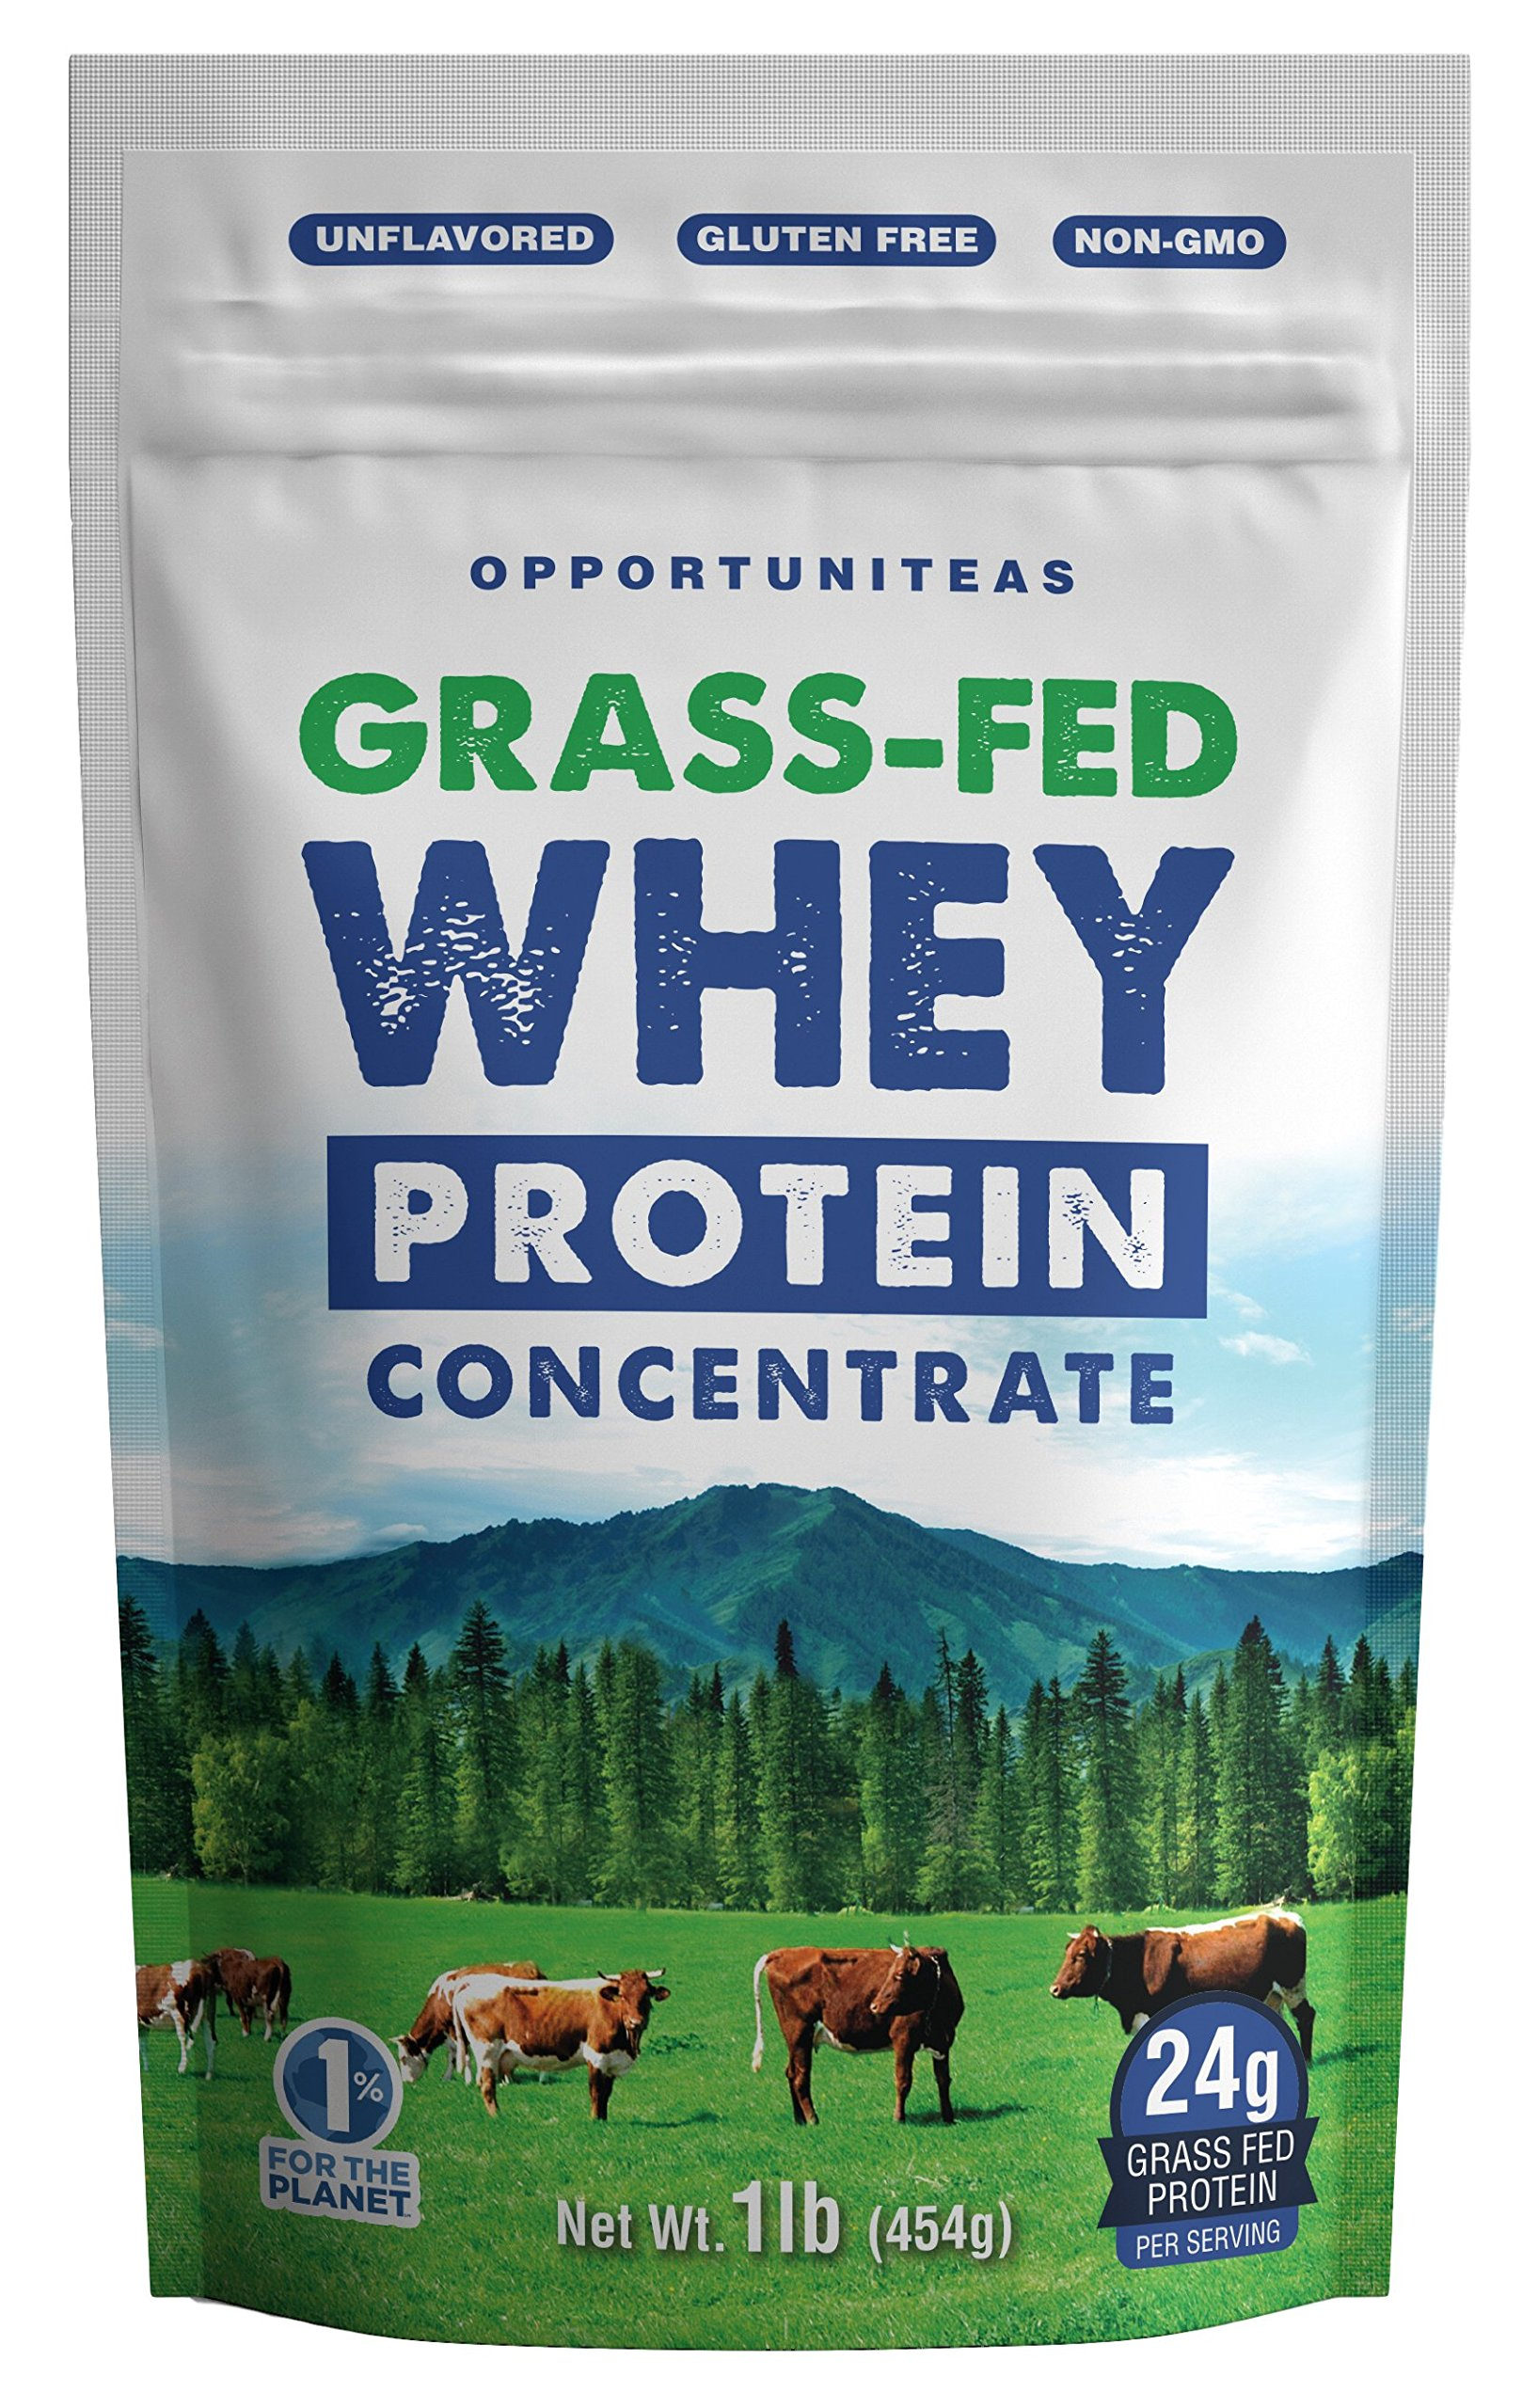 Grass Fed Whey Protein Concentrate - Premium Unflavored Protein Powder - Cold Processed Wisconsin Grass-Fed Protein for Any Smoothie, Shake, Drink, Recipe, or Food - Gluten Free & Non-GMO - 1 Pound by Opportuniteas